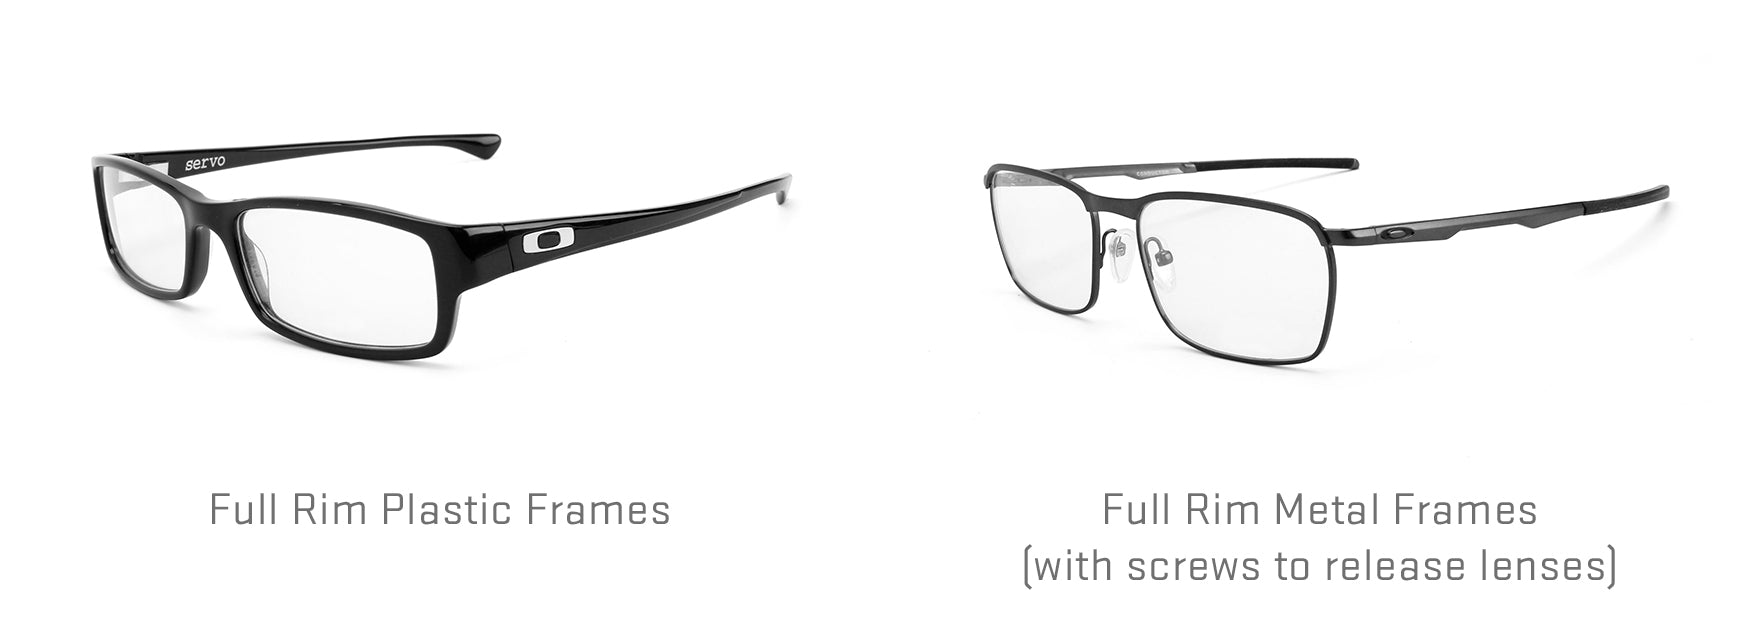 Full rim plastic frames and full rim metal frames